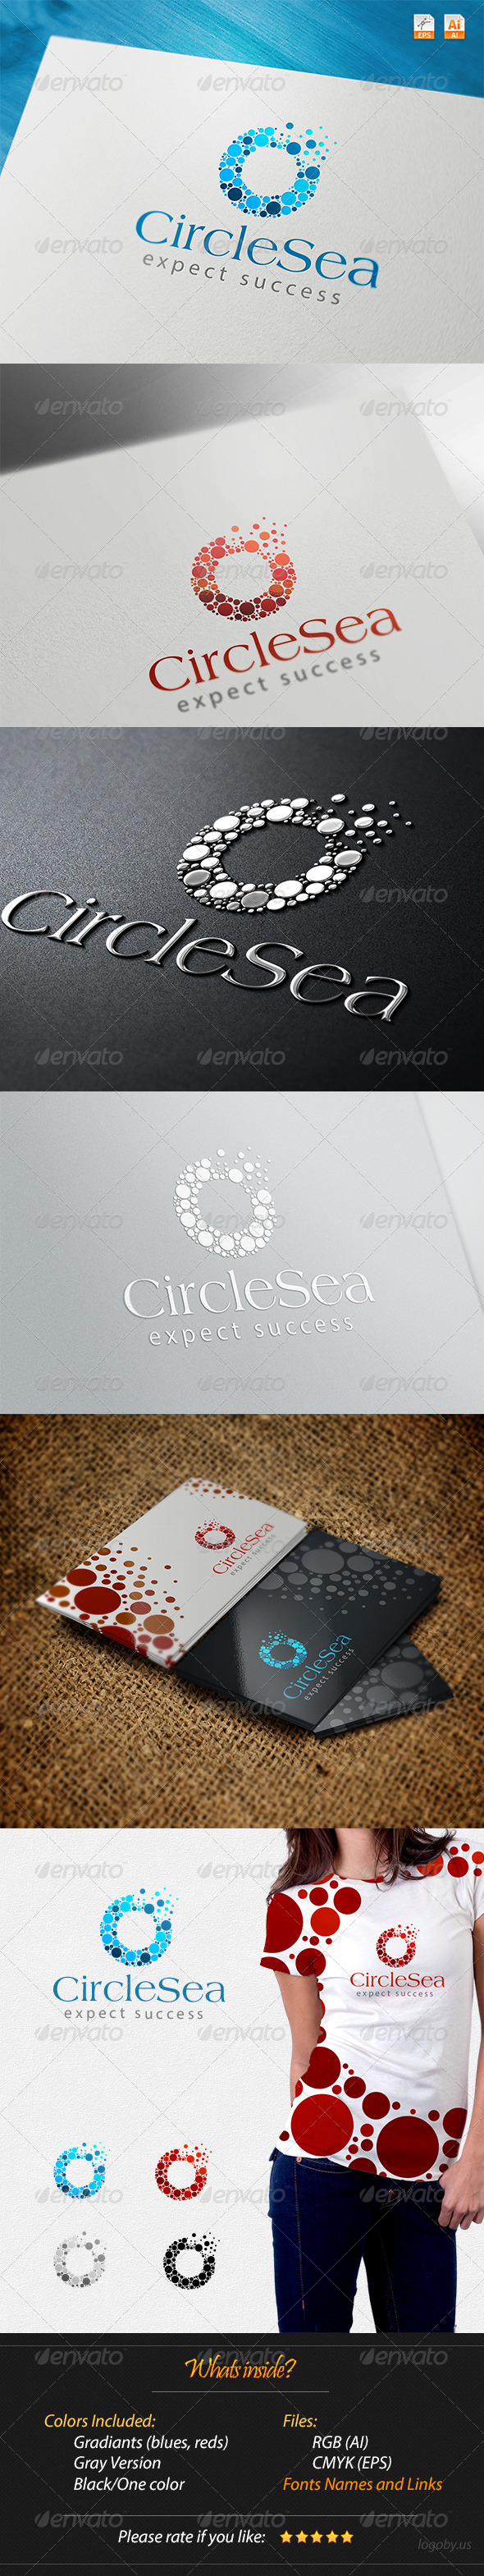 Circles Sea Expect Success Logo - Abstract Logo Templates